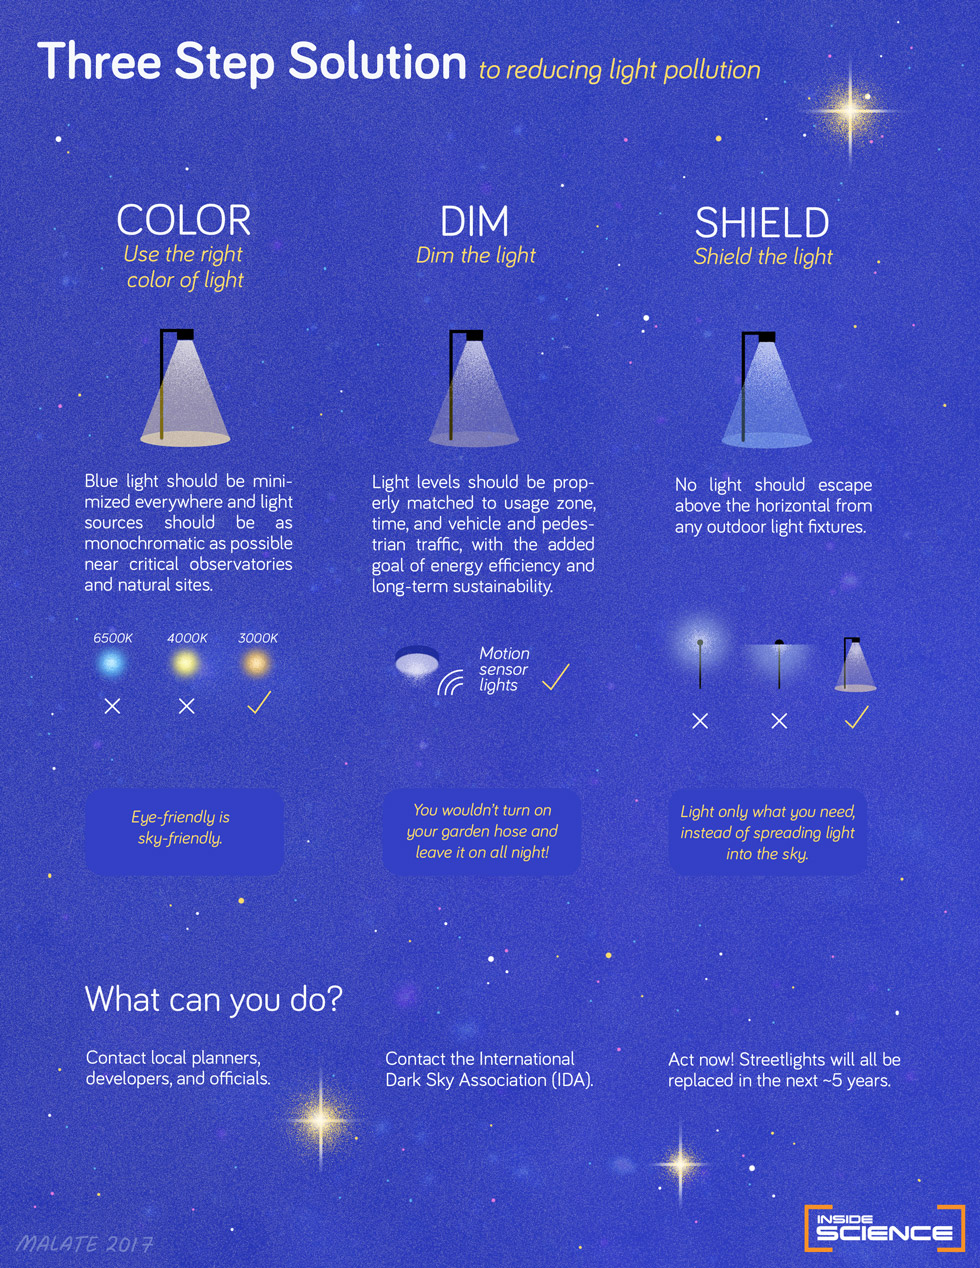 lightpollution_infogrph_final2.jpg